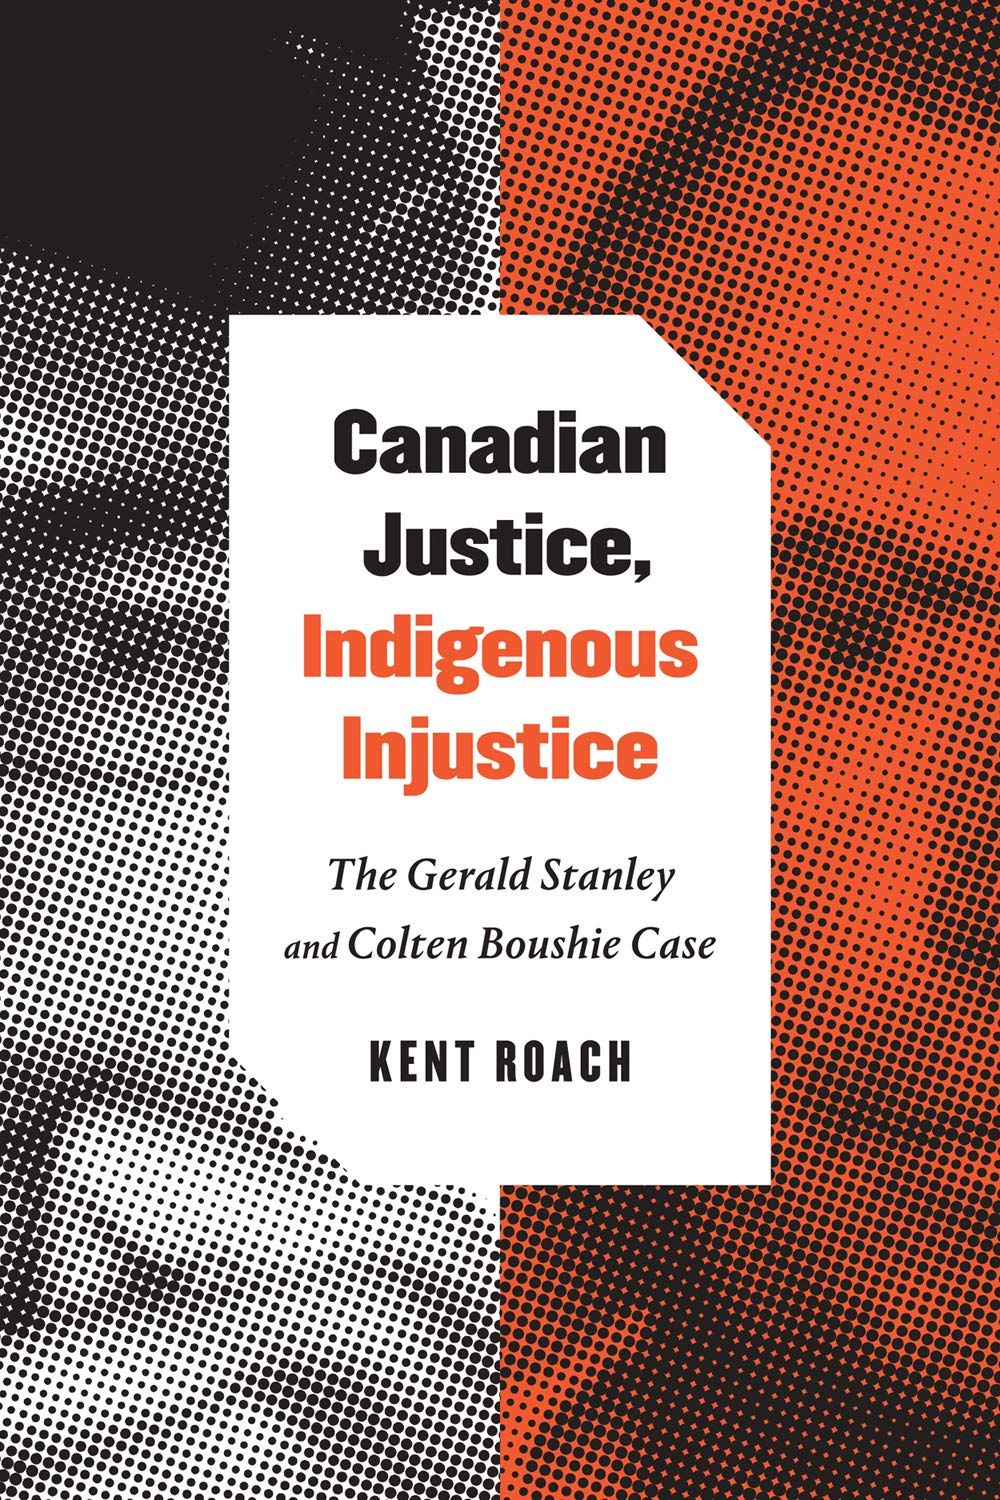 Canadian Justice Indigenous Injustice The Gerald Stanley And Colten Boushie Case Hardcover February 28 2019 Injustice Injustice Criminal Justice Justice